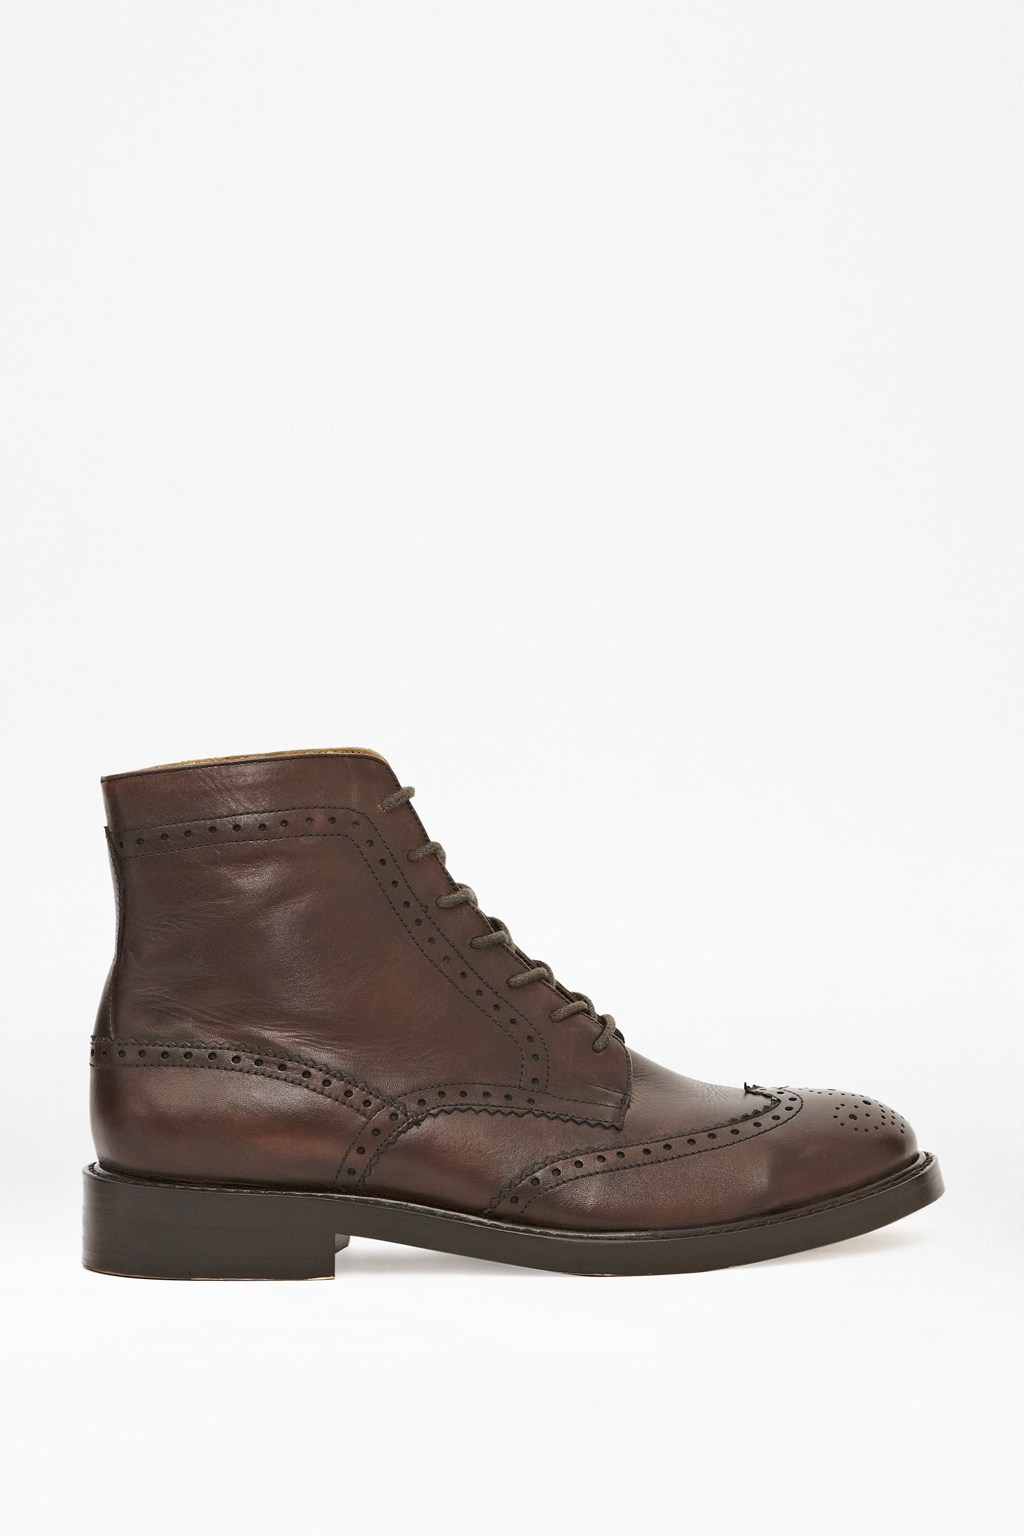 nick lace up leather ankle boots mens styles